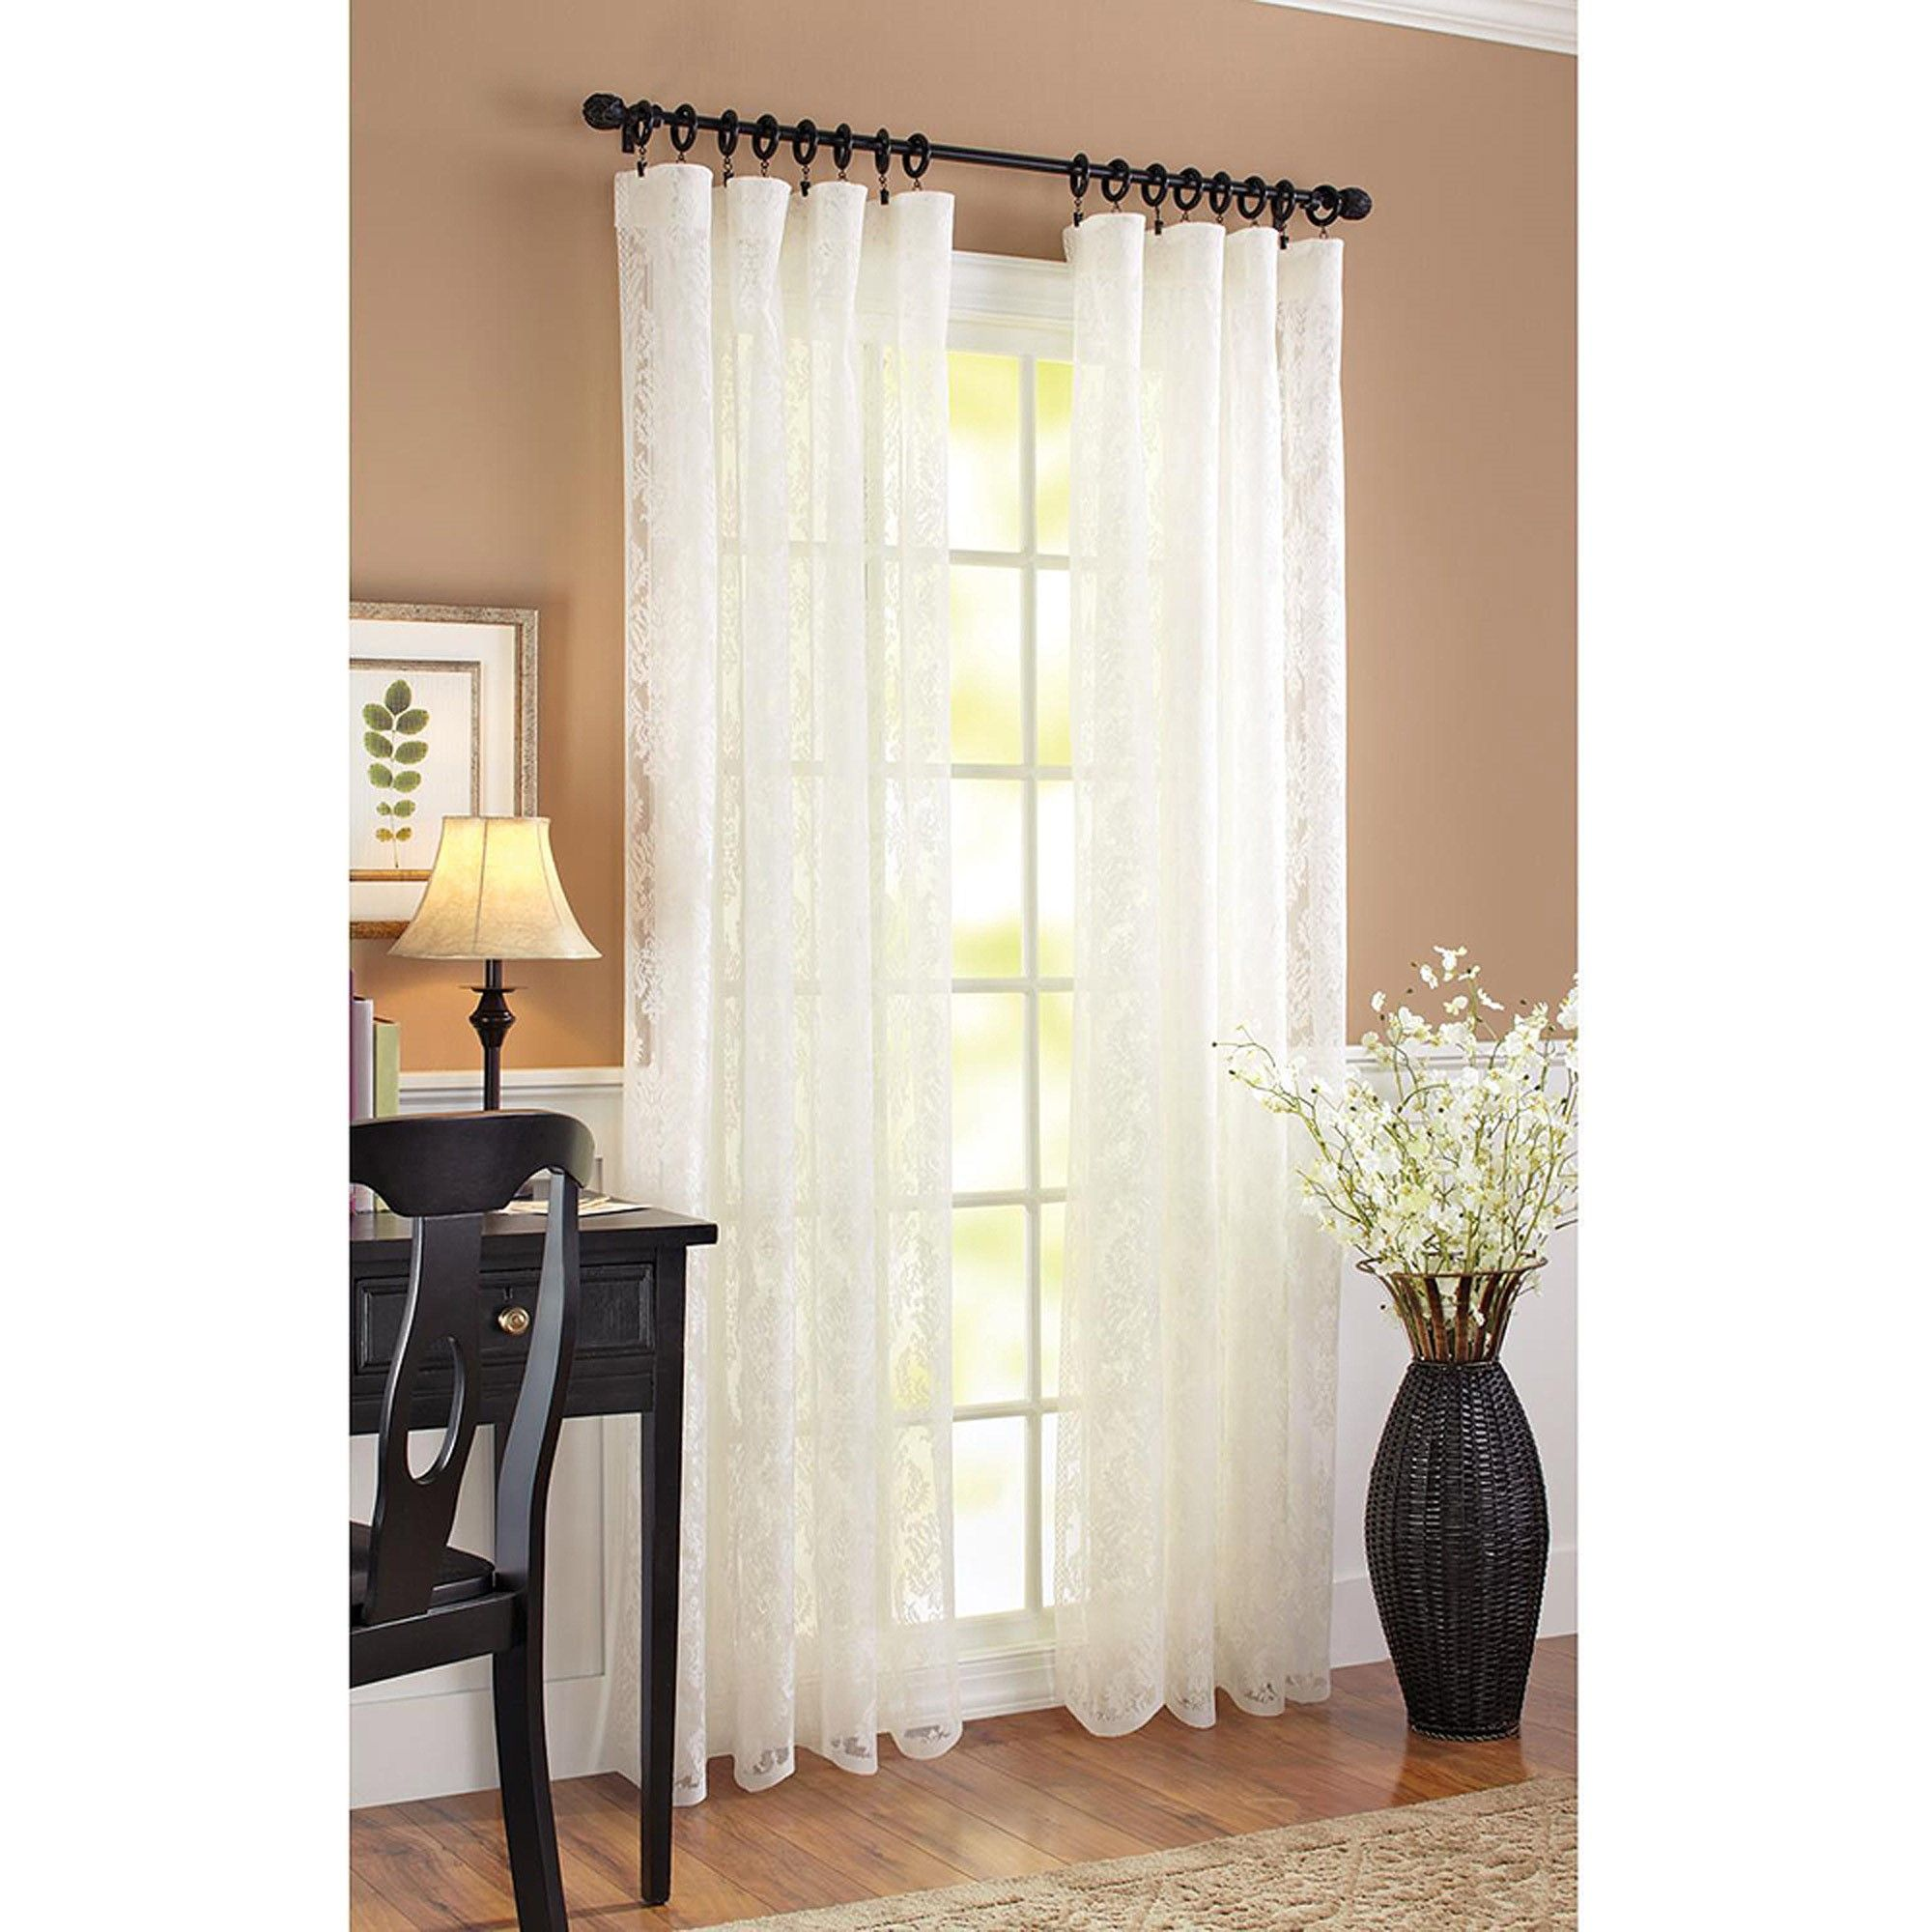 Home Damask Curtains Panel Curtains Curtains